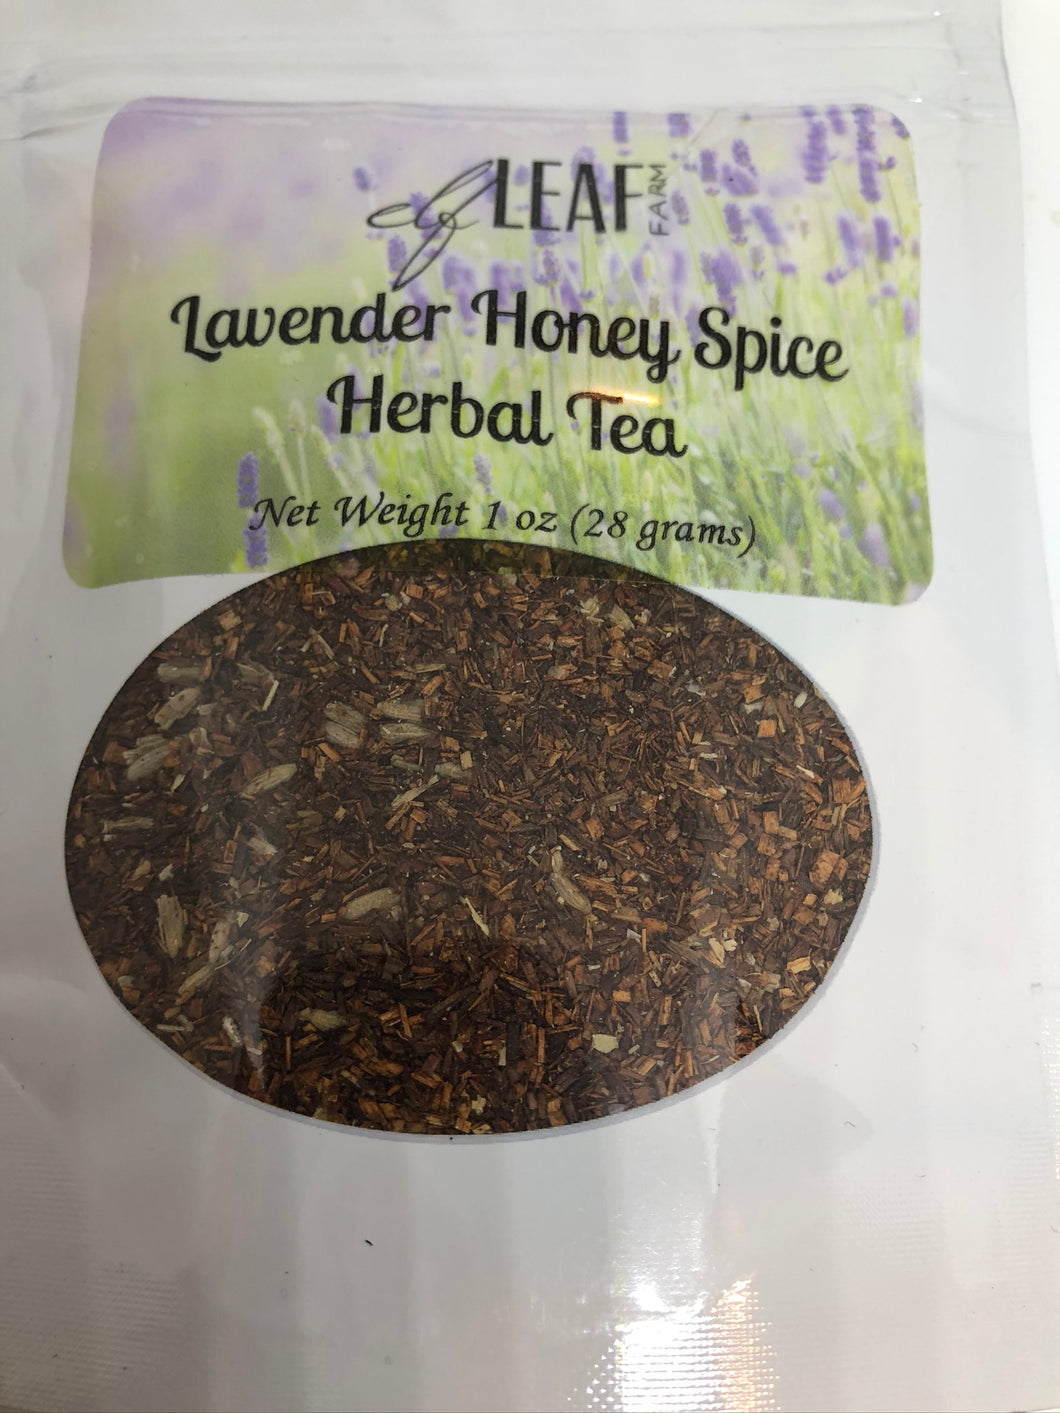 Lavender Honey Spice Herbal Tea 1 oz Package